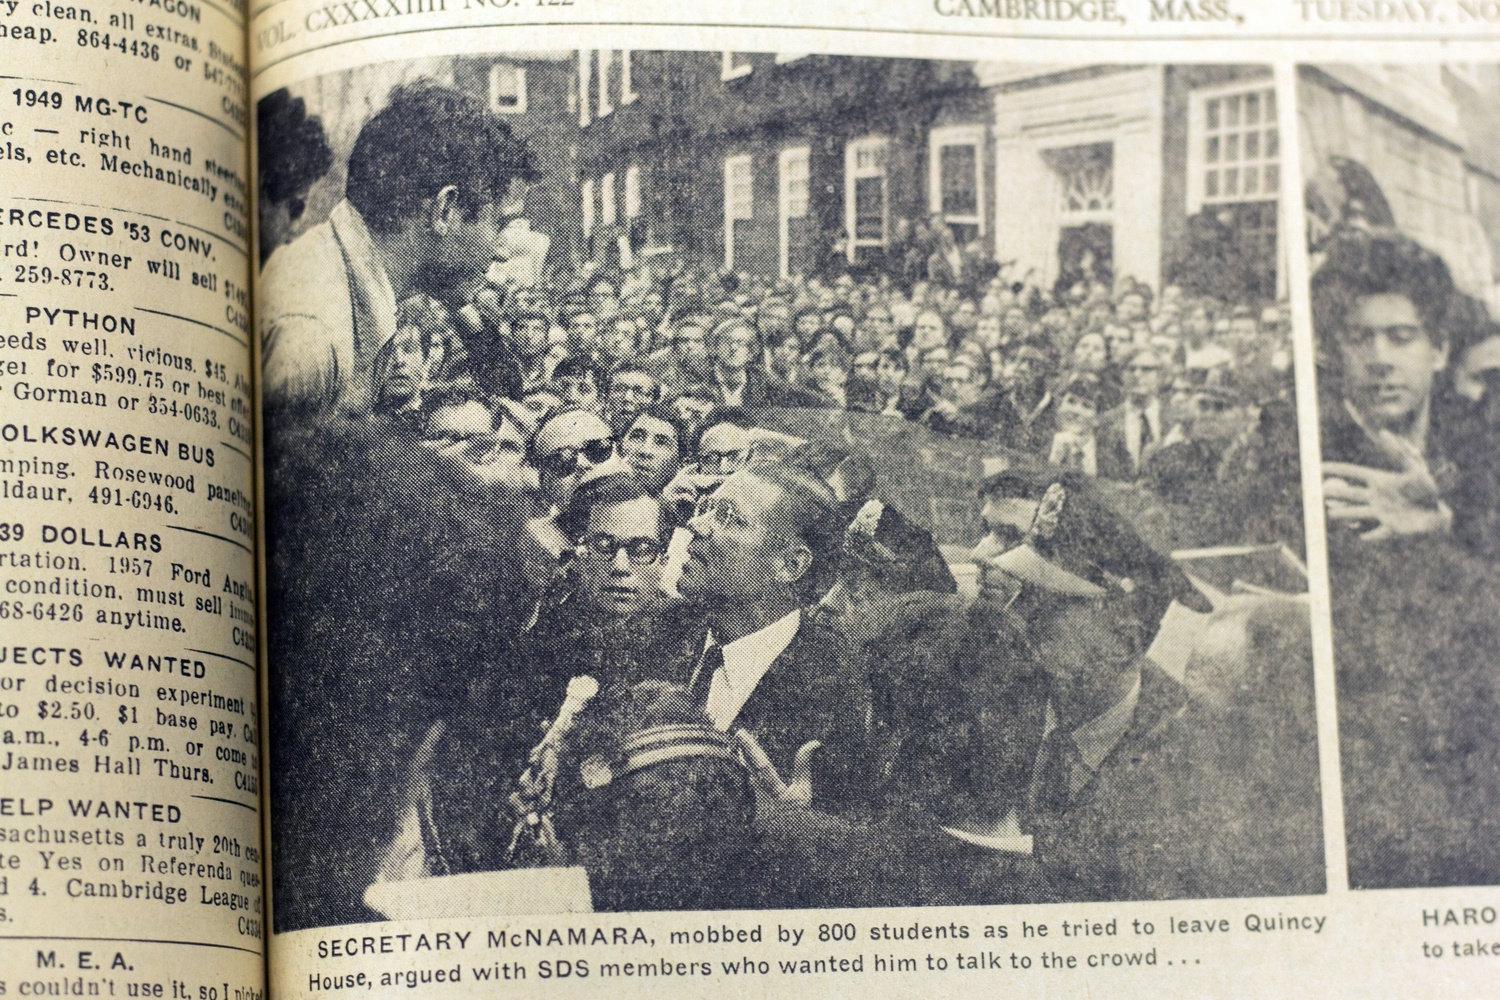 Secretary McNamara is shown being mobbed by 800 students in Quincy courtyard in 1967.